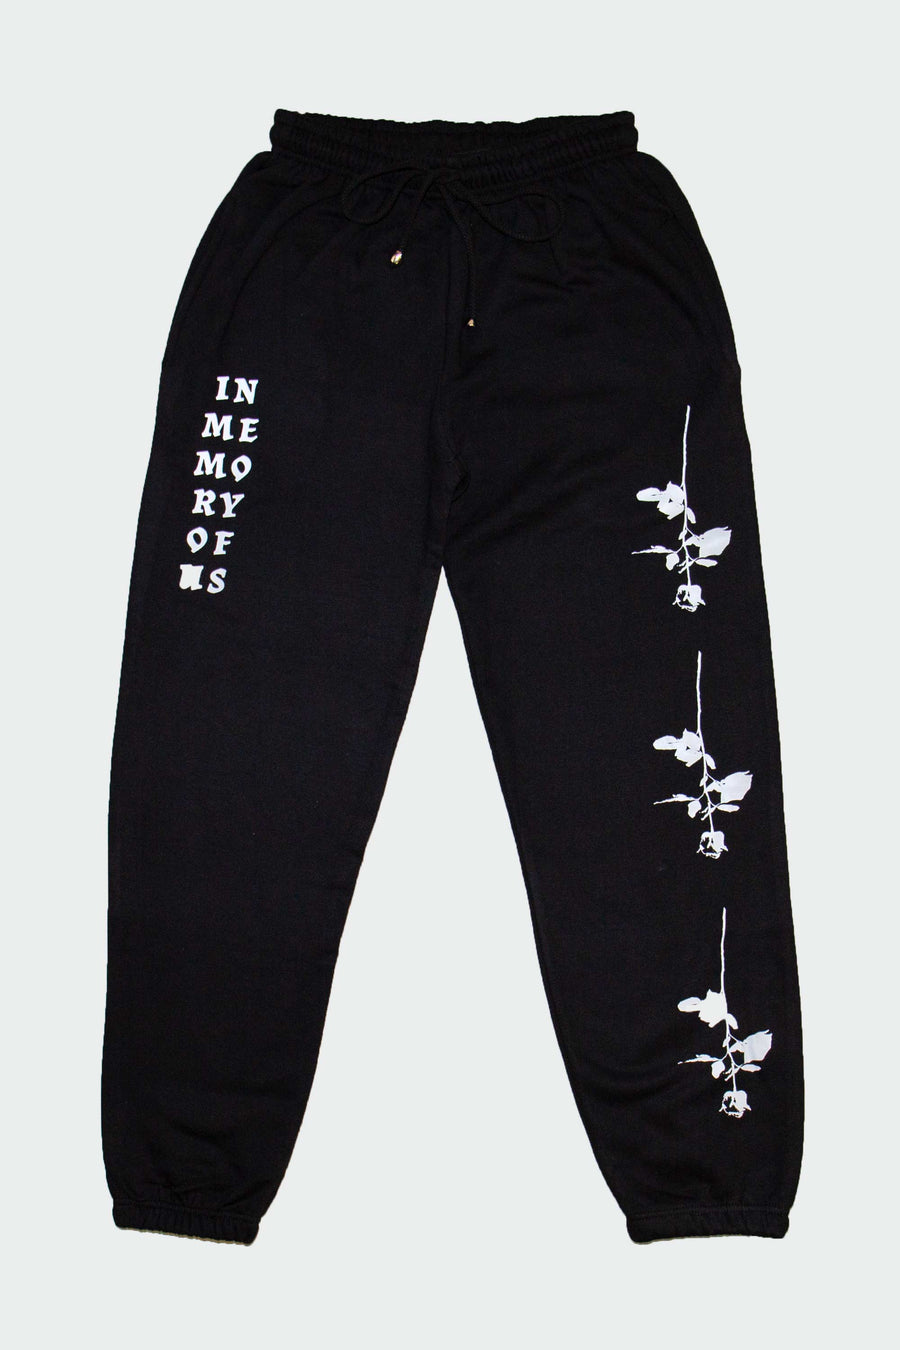 In Memory Sweatpants